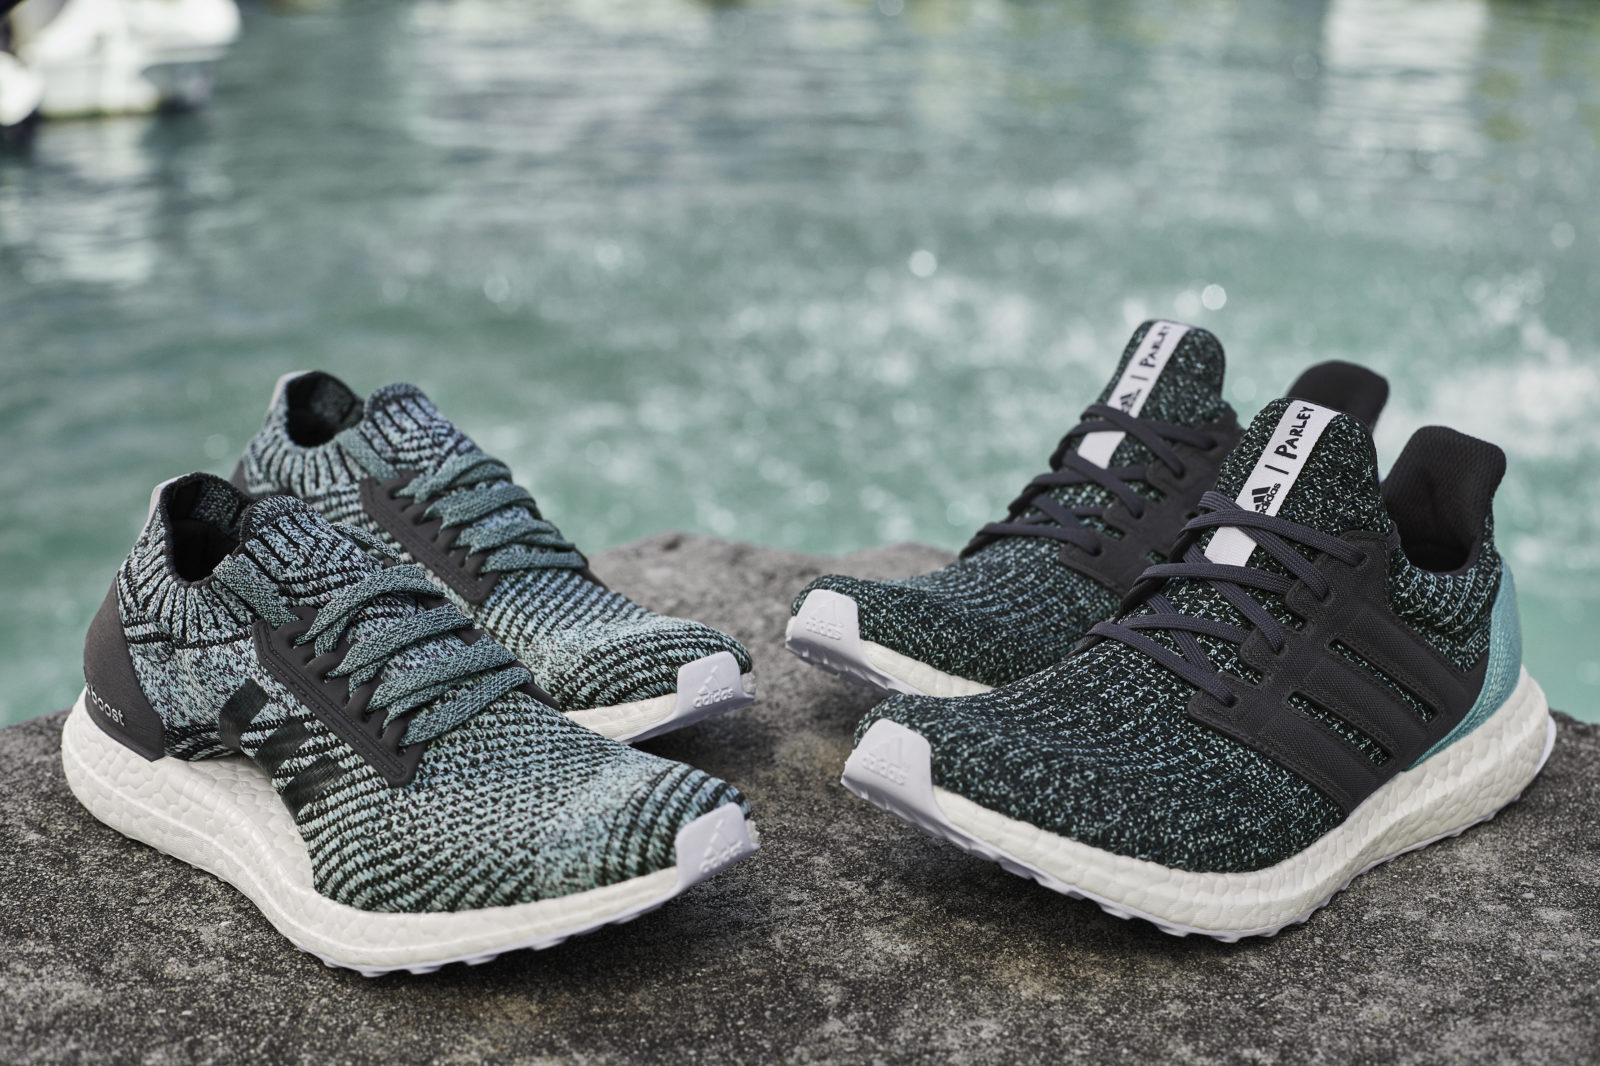 Performance Meets Sustainability The New Parley Edition —